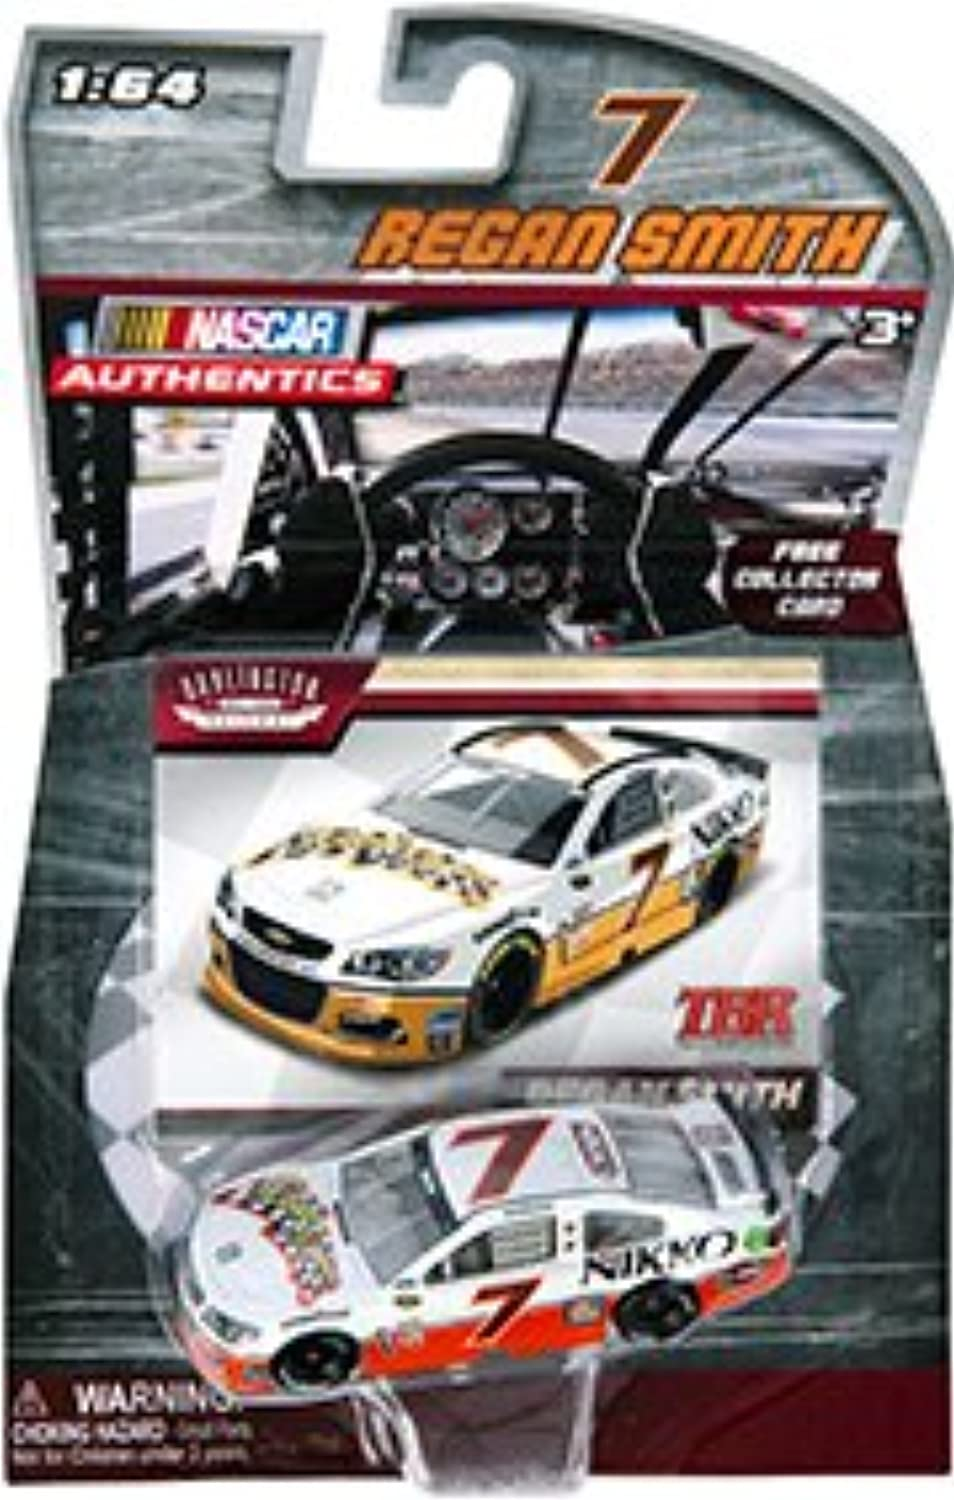 2016 Regan Smith Darlington Throwback  7 Nikko Road Rippers 1 64 Scale Diecast Car With Collector Card NASCAR Authentics